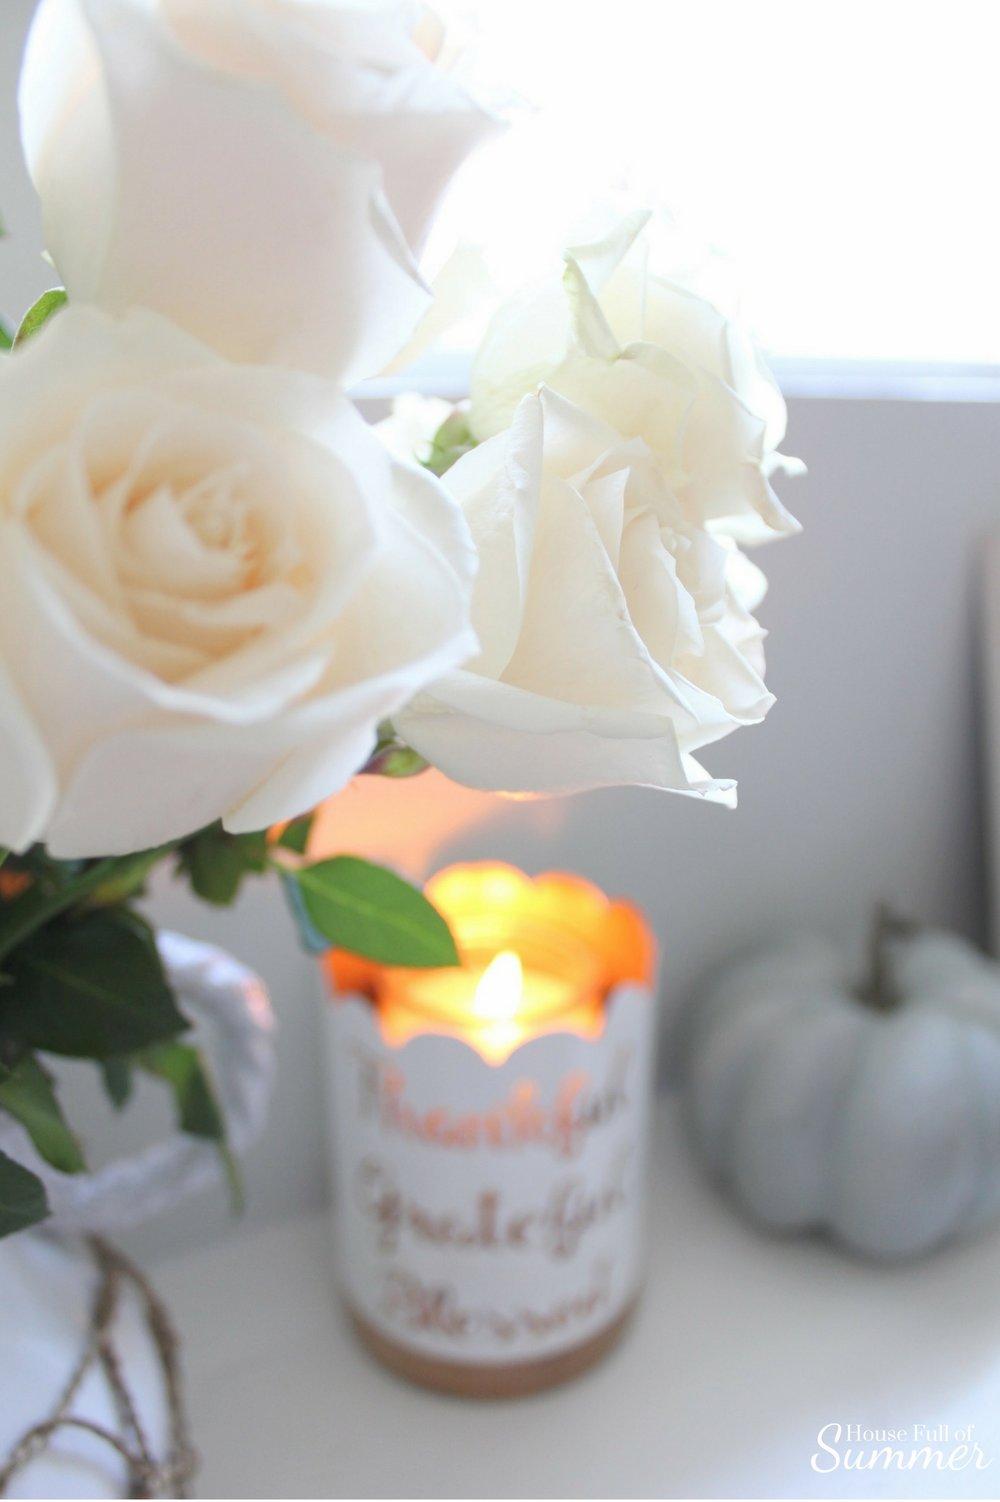 House Full of Summer - Fall Home Tour: Cozy Coastal Chic, Welcoming Fall Blog Hop